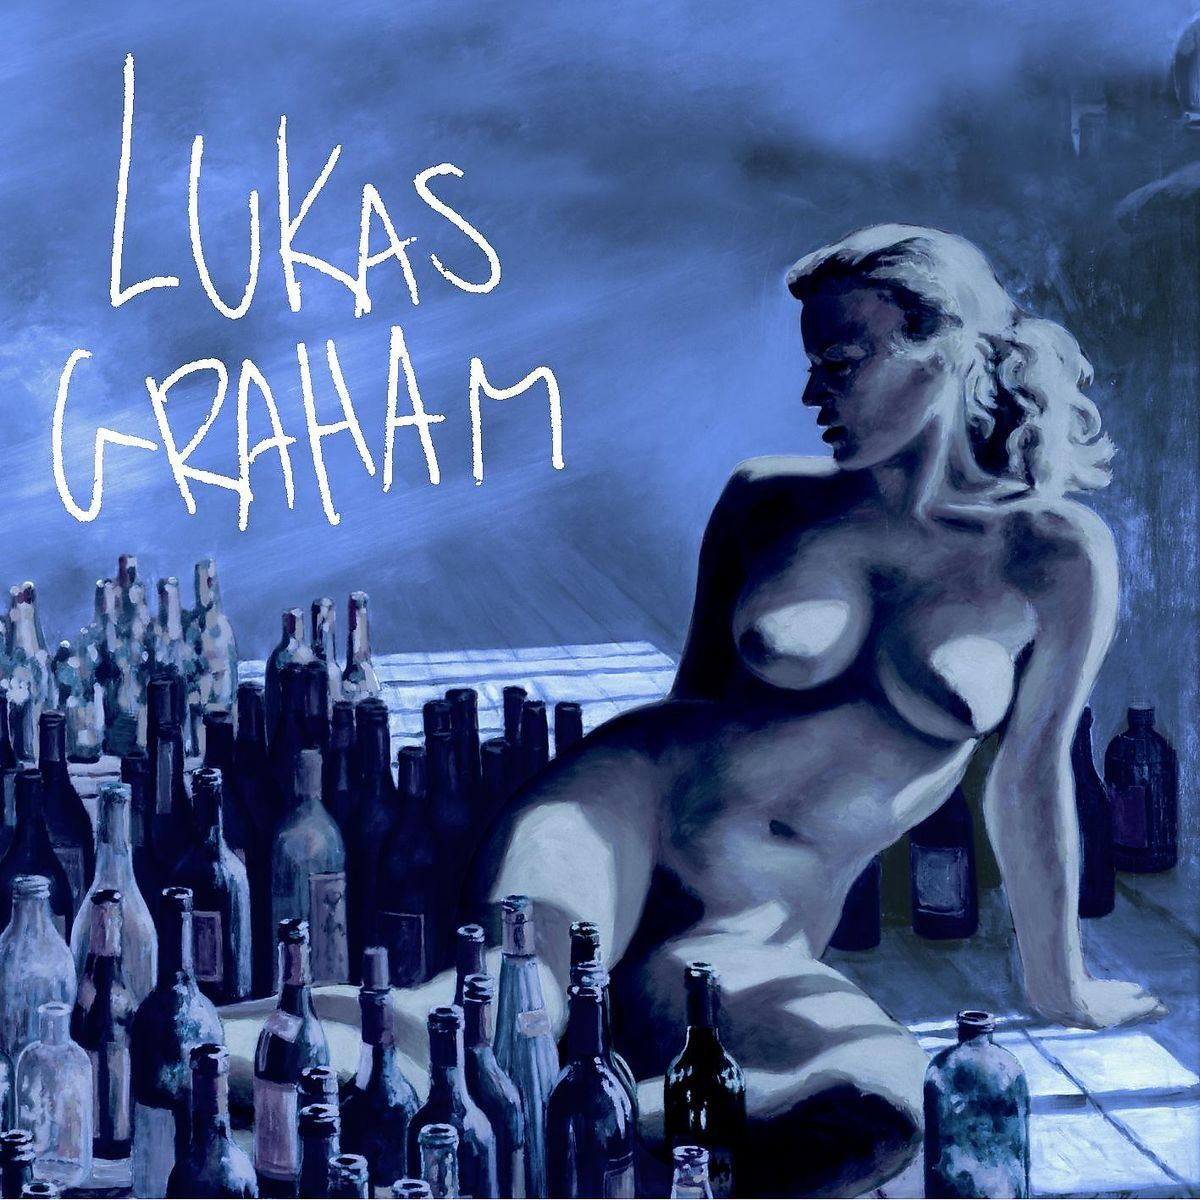 Lukas Graham - Lukas Graham (Blue Album) album cover